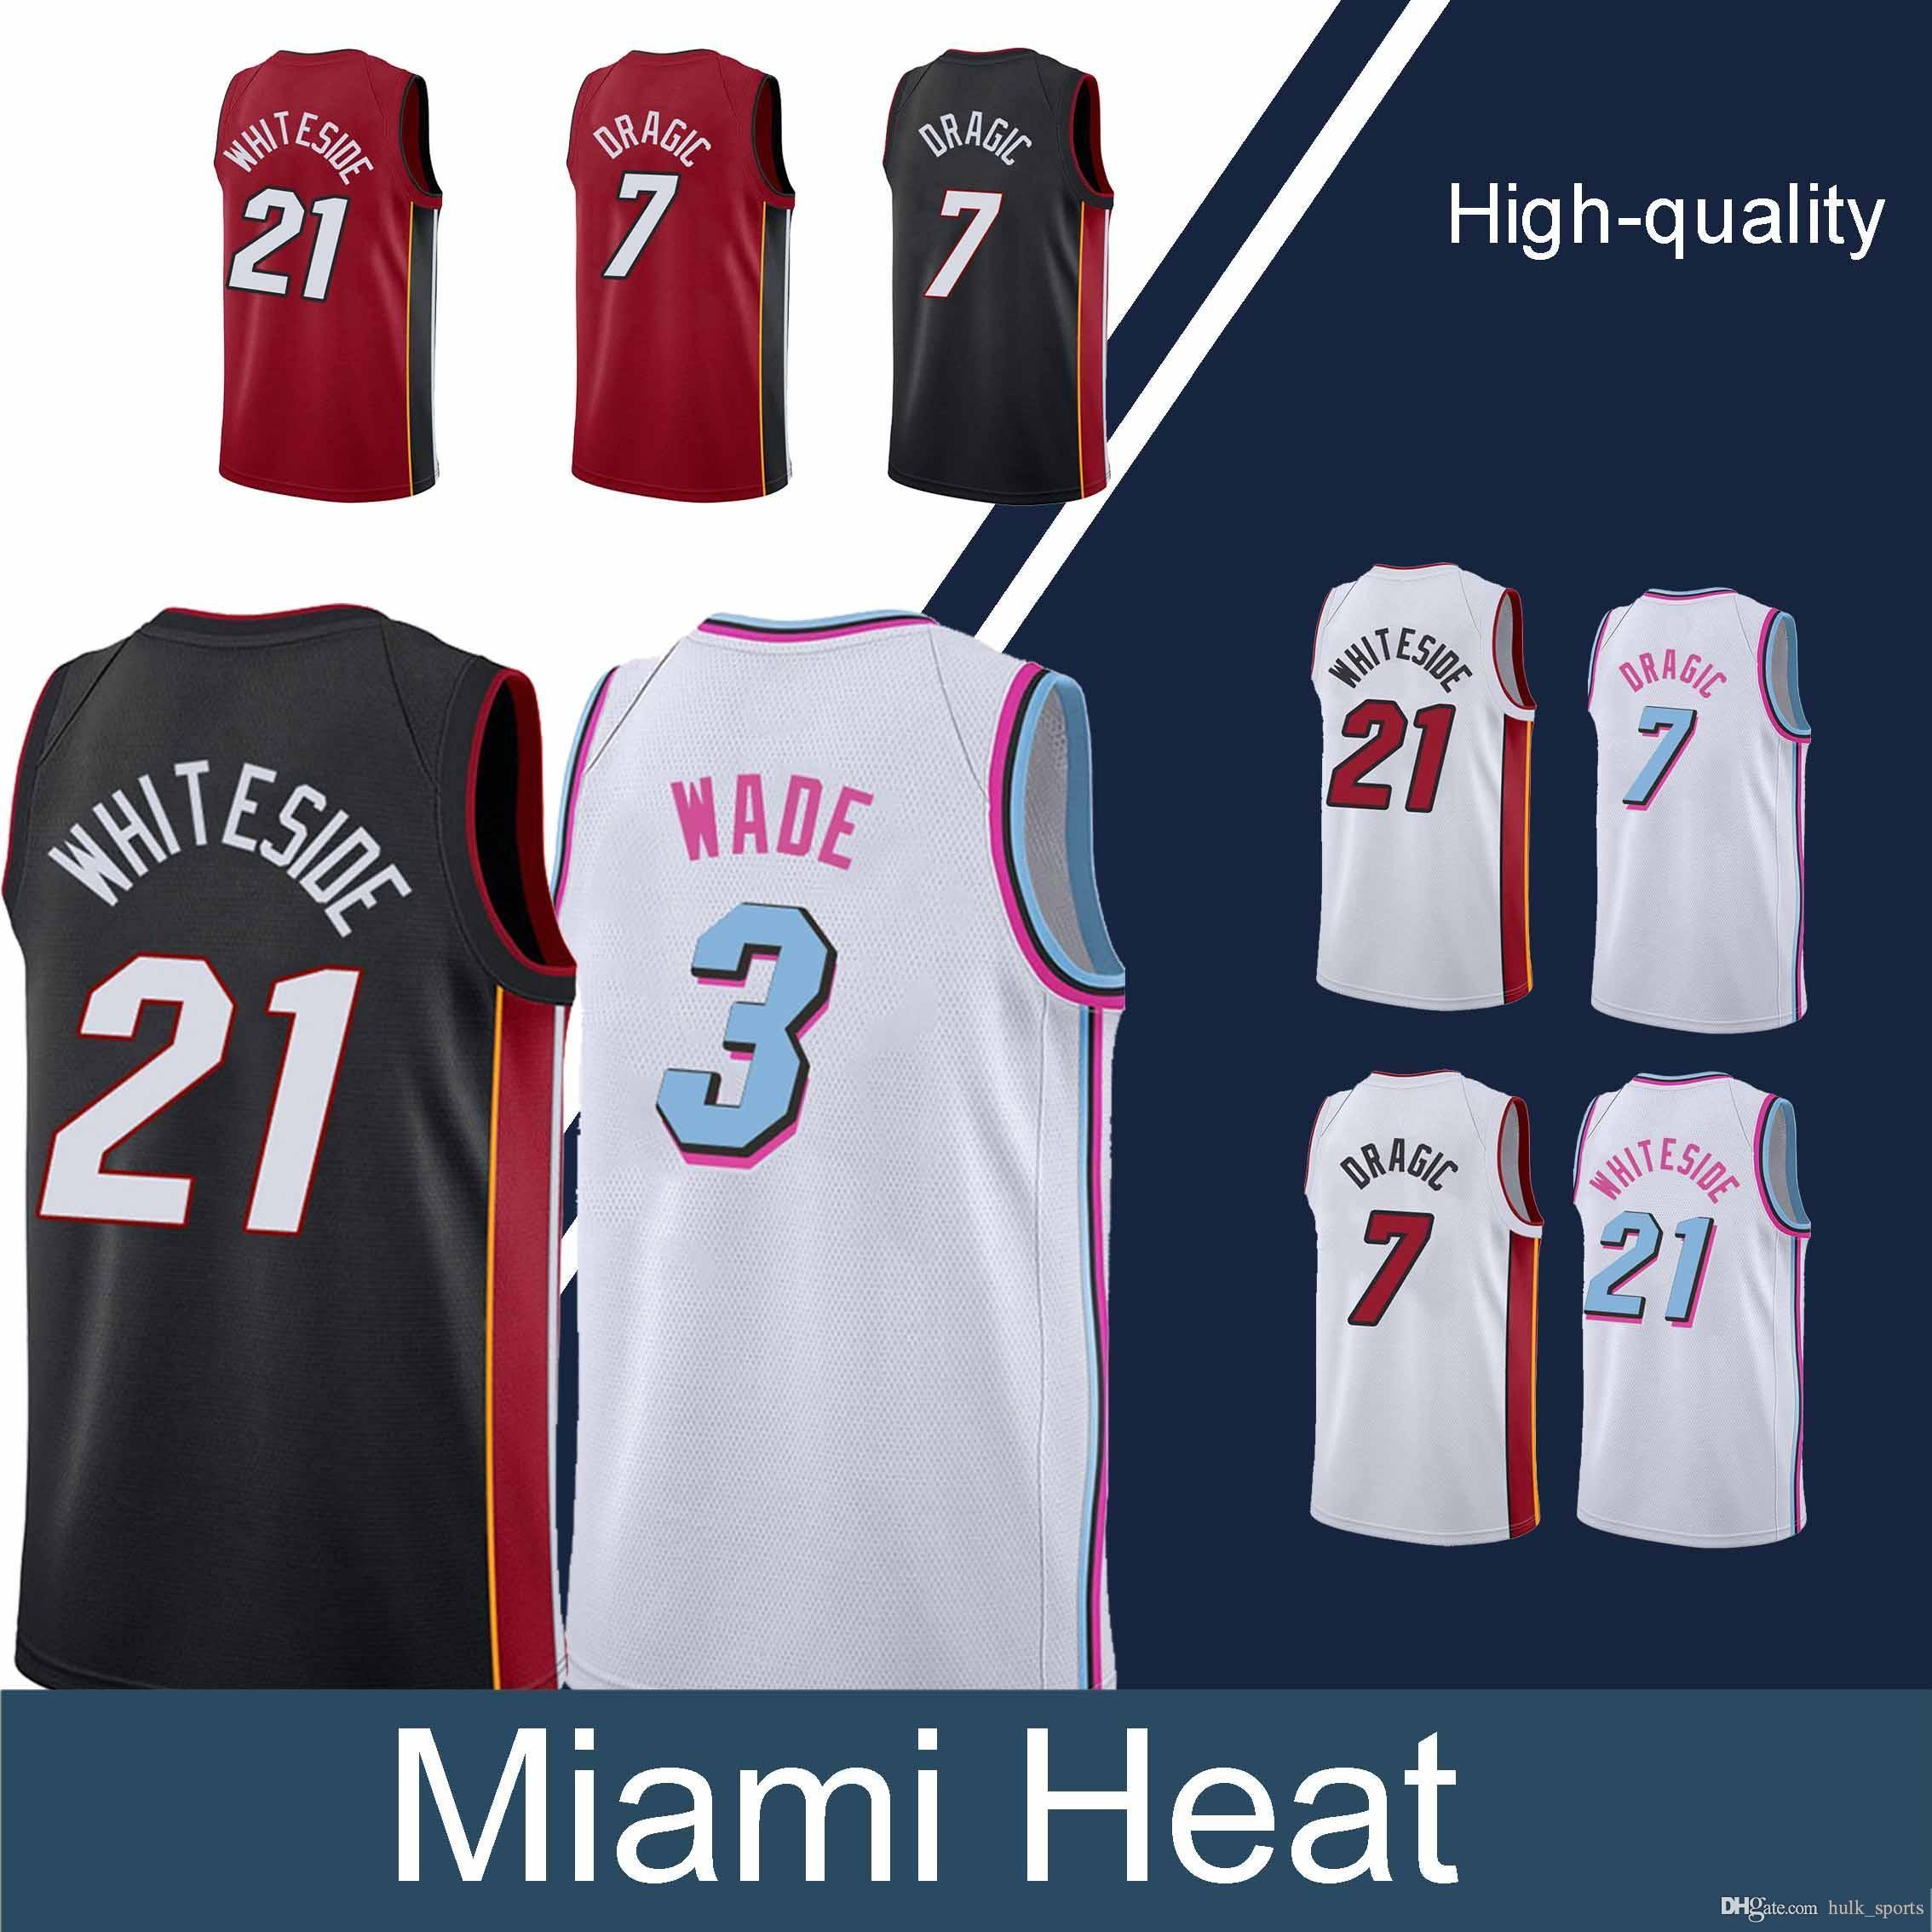 low priced 1f276 05678 Miami jerseys Heat Dwyane 3 Wade jersey Goran 7 Dragic Hassan 21 Whiteside  hot sale Basketball Jerseys